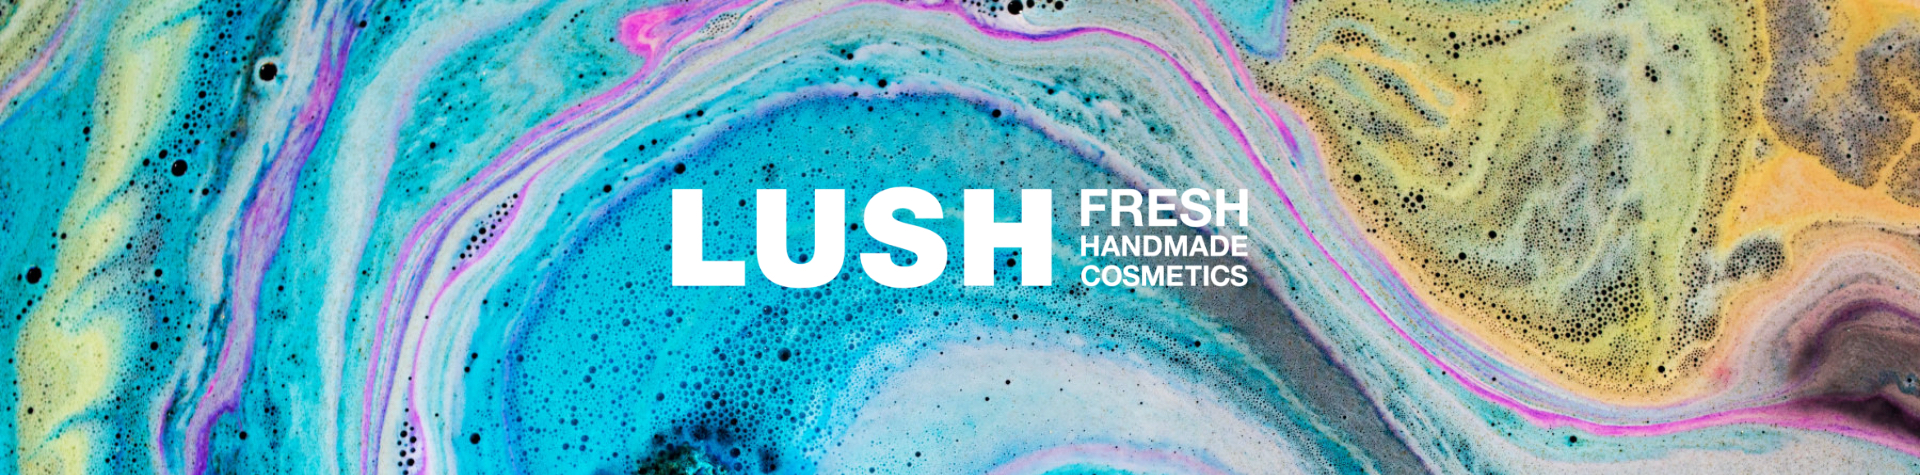 Lush Online Store in the Philippines